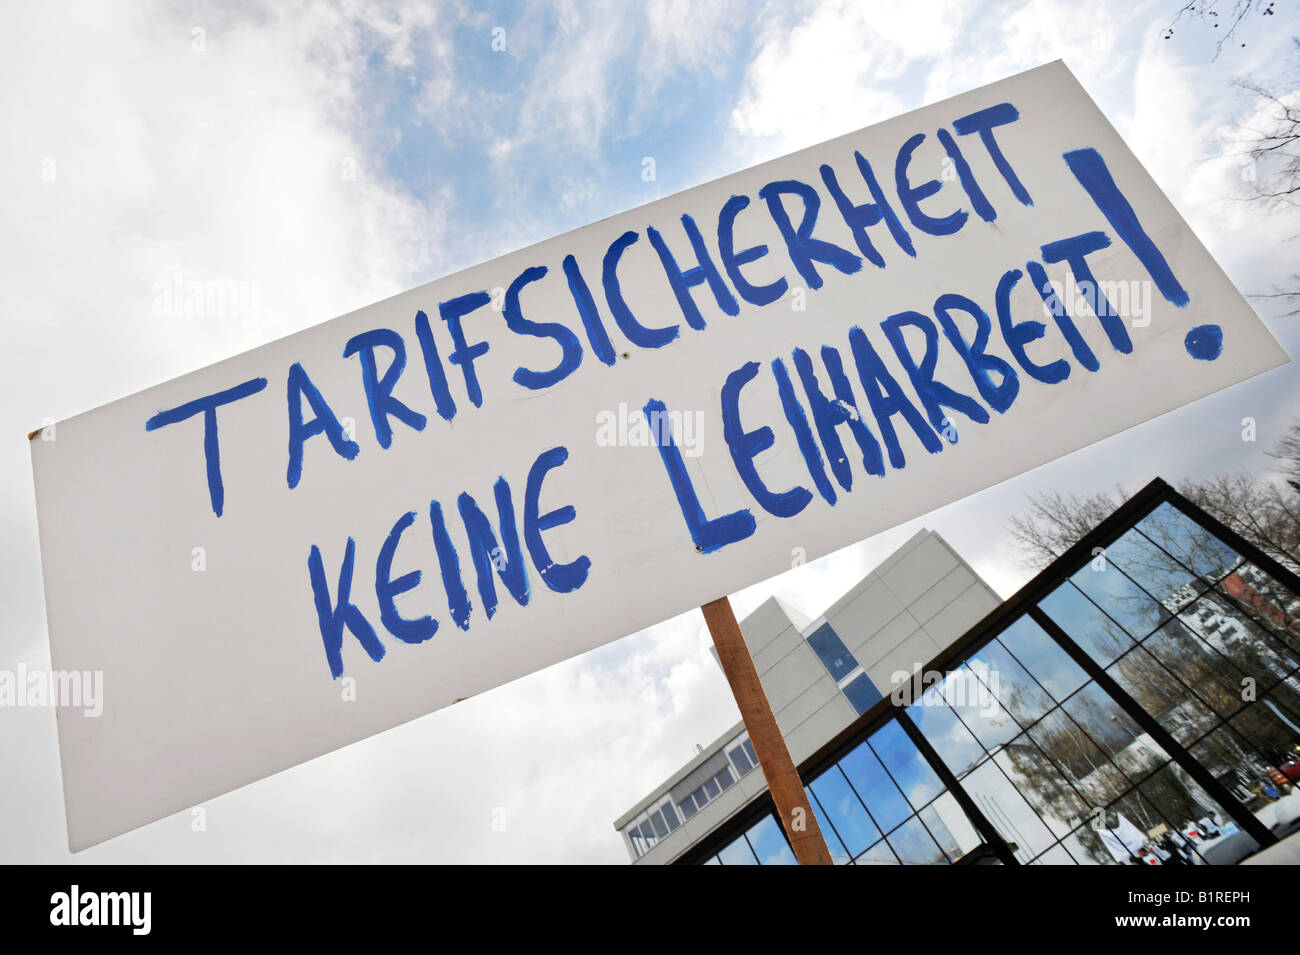 Sign reading Tarifsicherheit keine Leiharbeit, collective pay commitment, not temporary employment, collective labour - Stock Image